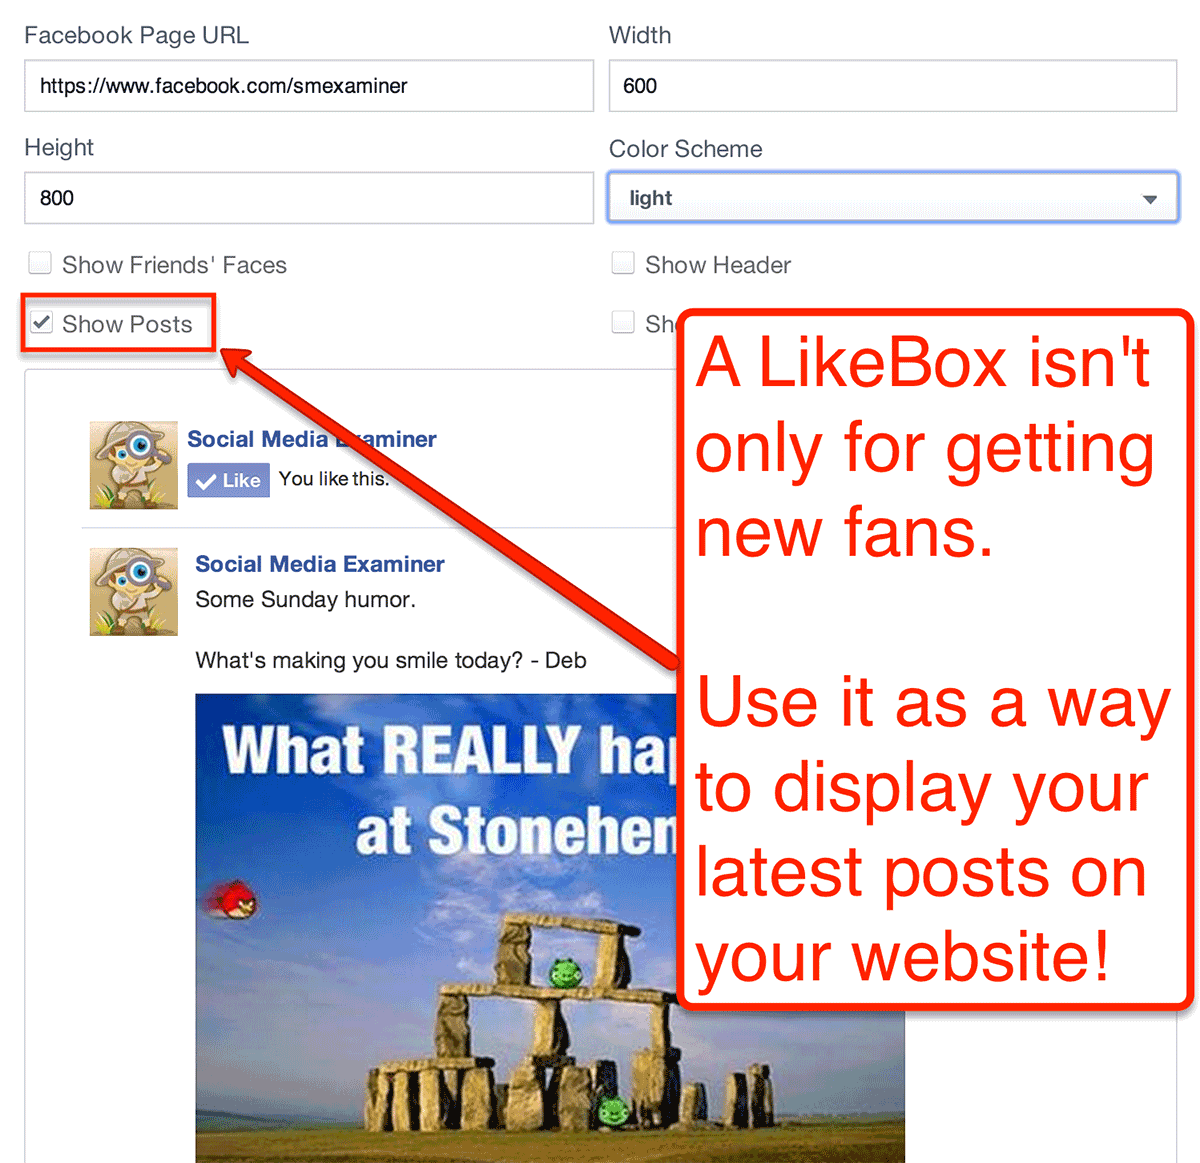 jh-display-latest-facebook-posts-within-a-likebox